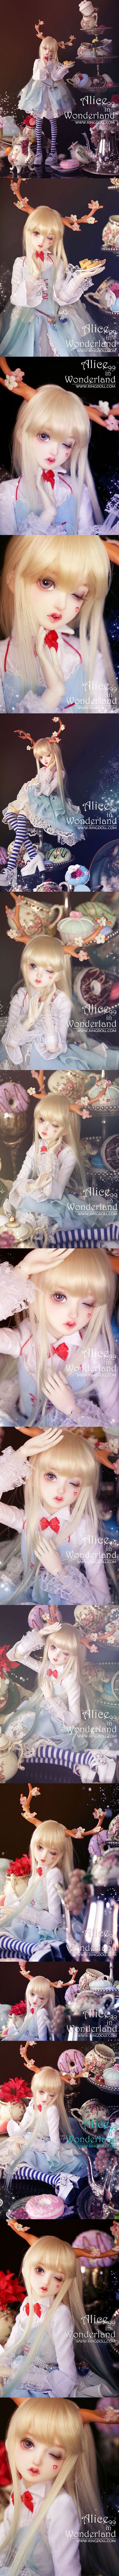 BJD Alice99 SP Girl 56cm Ball-jointed Doll_Oct. New Arrival_Ball Jointed Dolls (BJD) company-Legenddoll